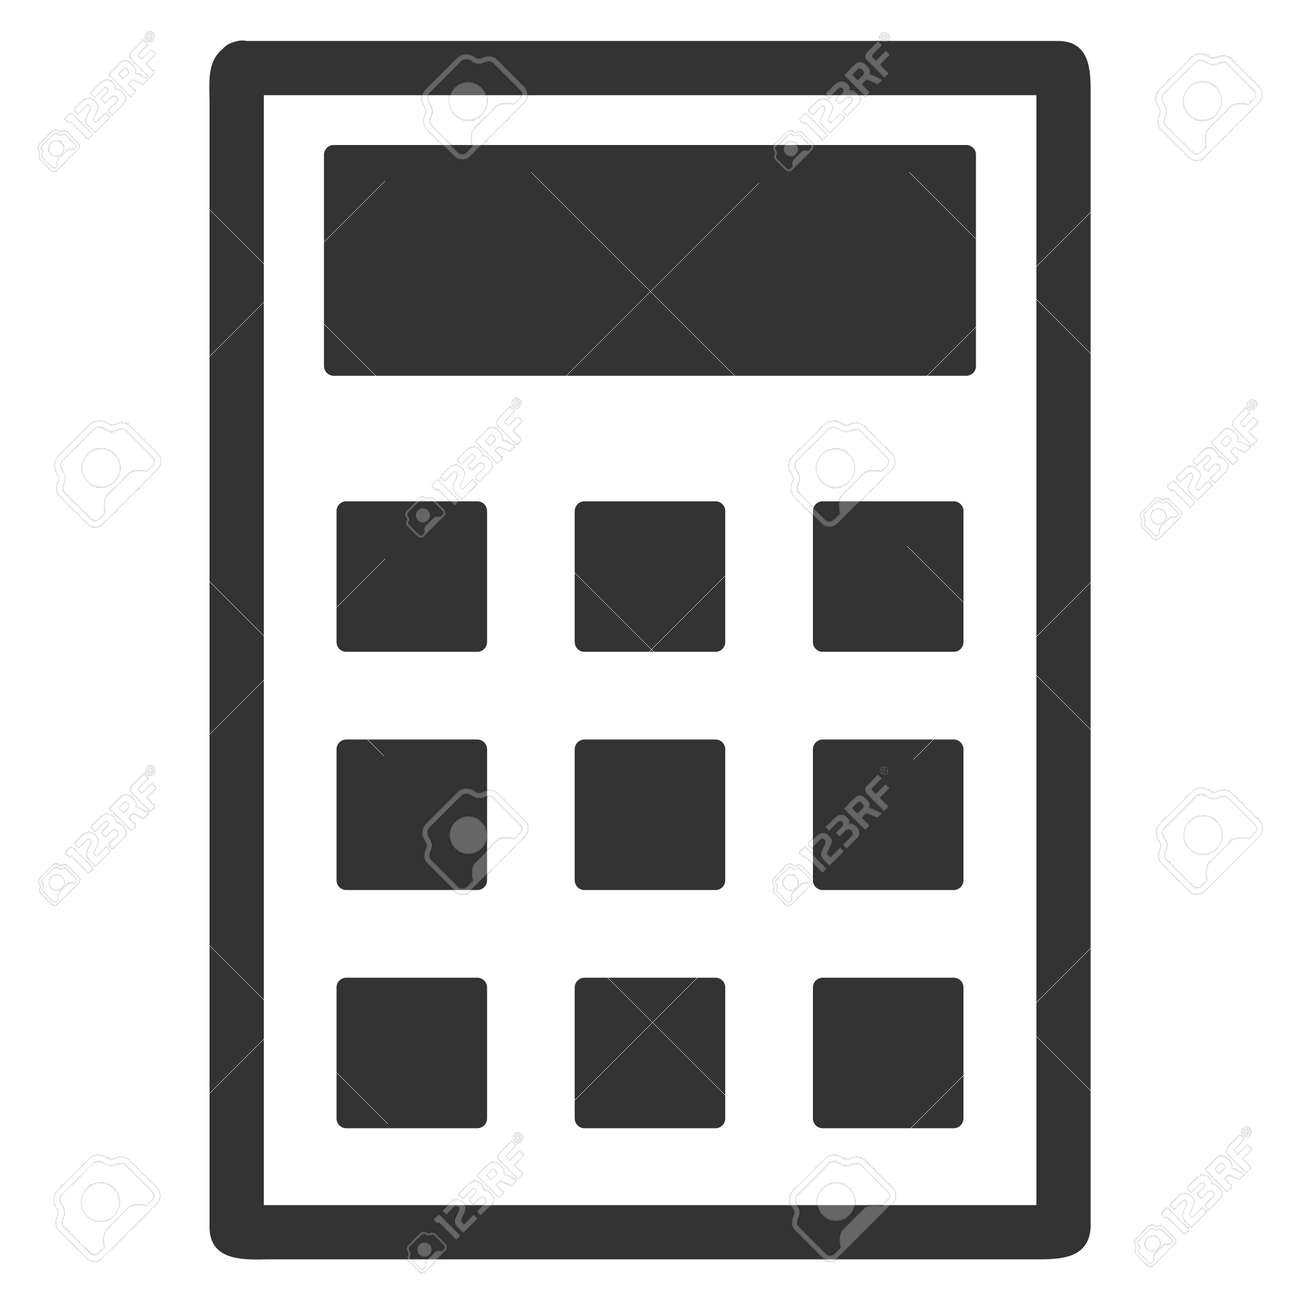 calculator vector icon flat gray symbol pictogram is isolated